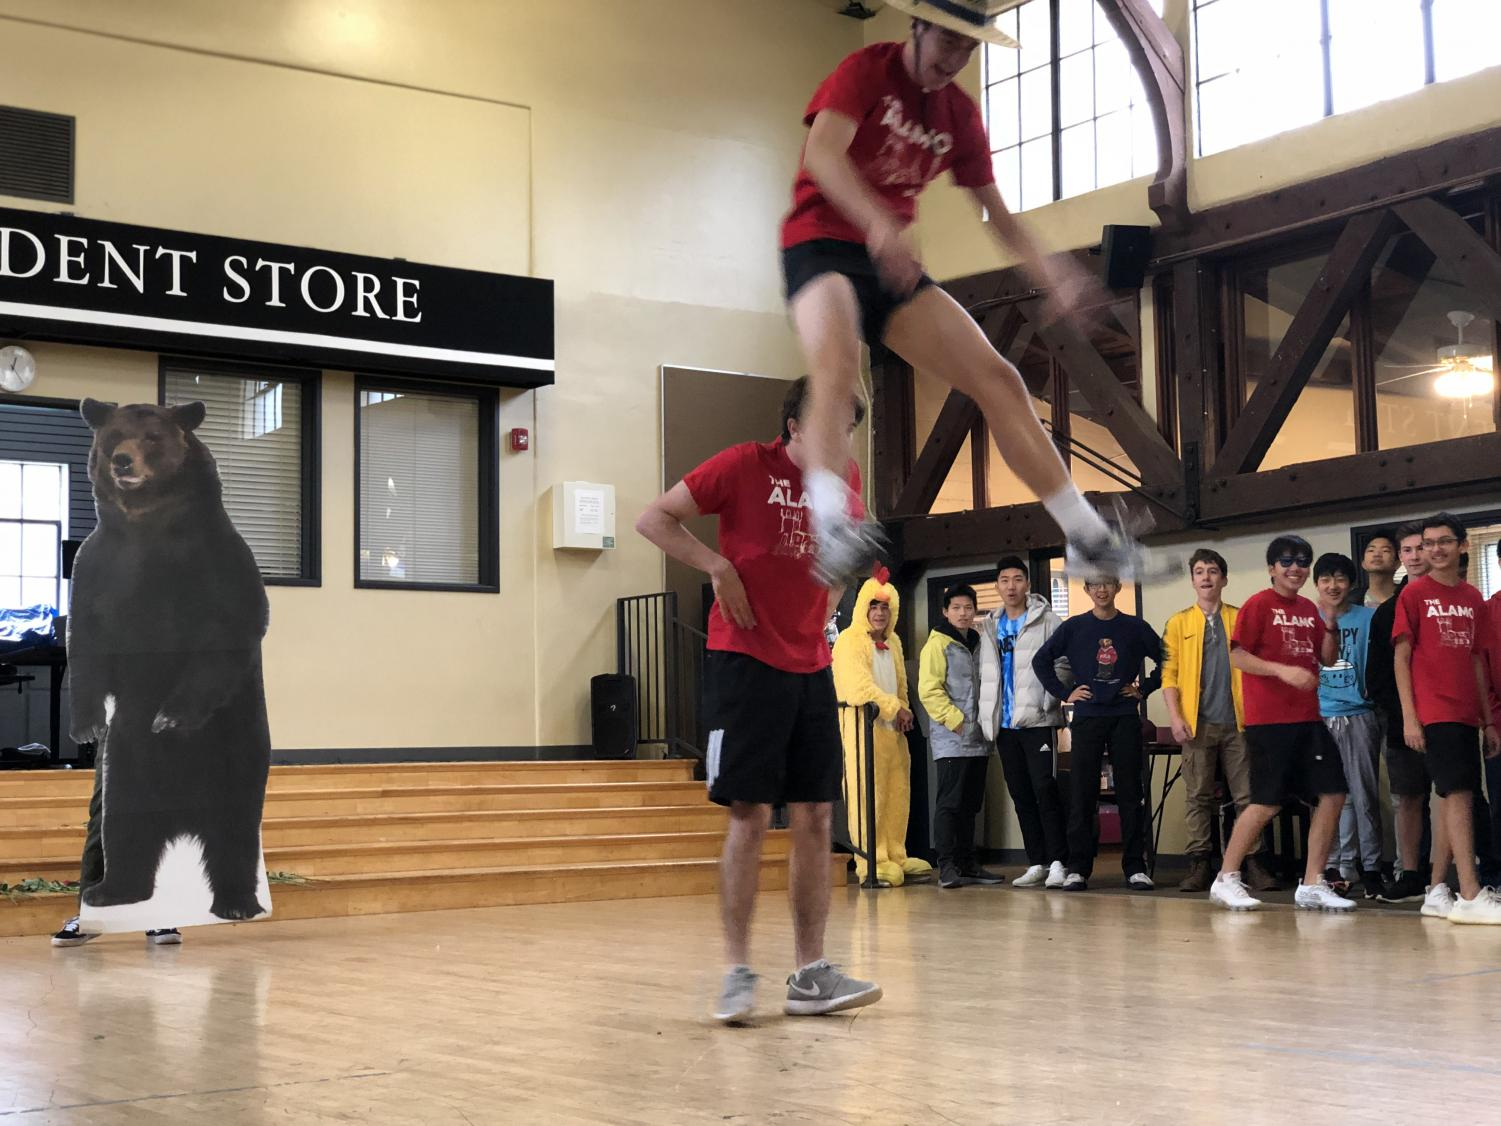 JP Calderoni ('19) and Willy Martinez ('19) perform a stunt in the middle of the Alamo dance.